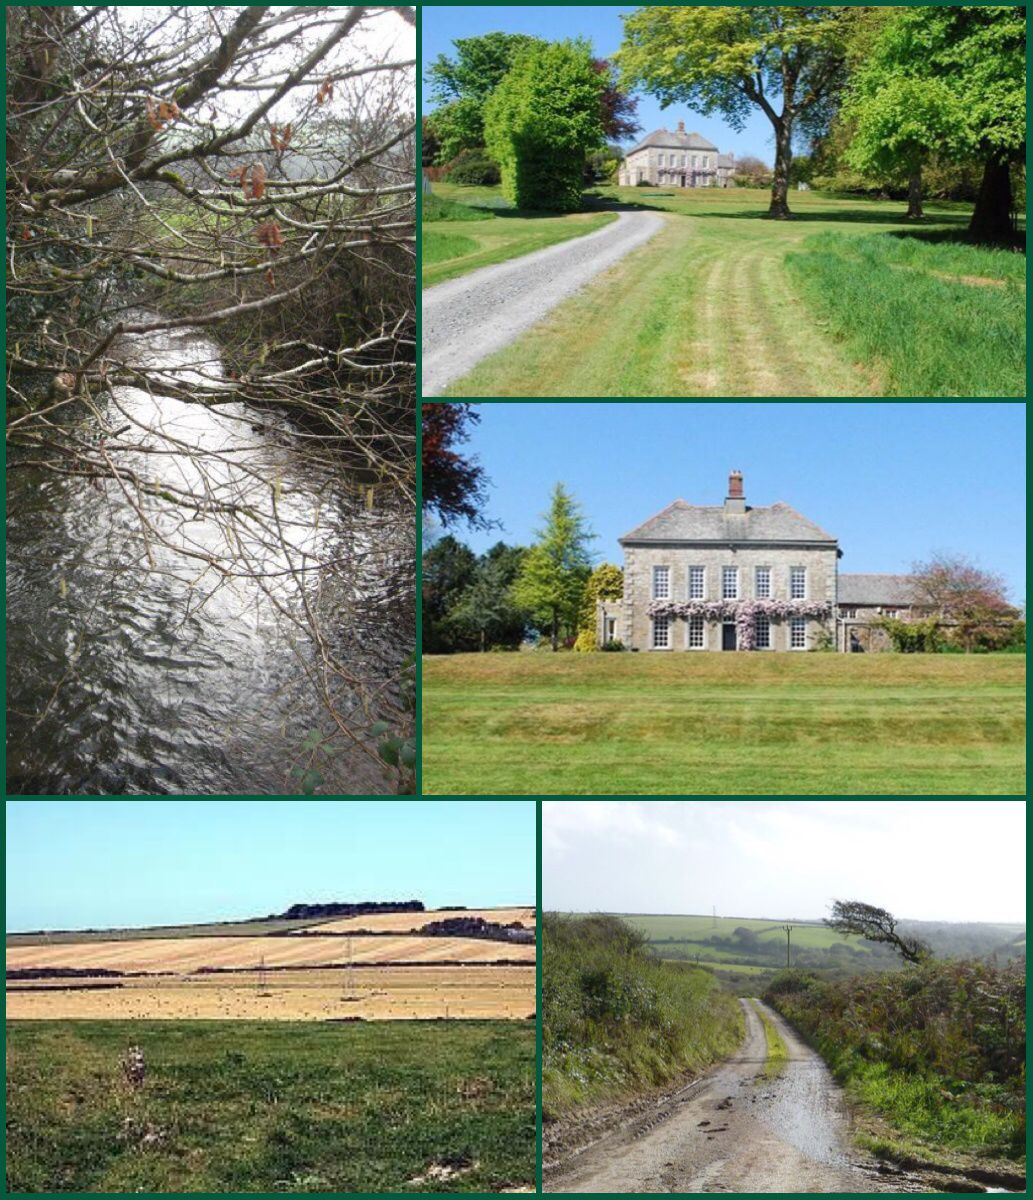 Truthan House Is A House Near St Erme In Cornwall The House Is 18th Century With Some 19th Century Alterations It Has A Fi County House Cornwall House Styles